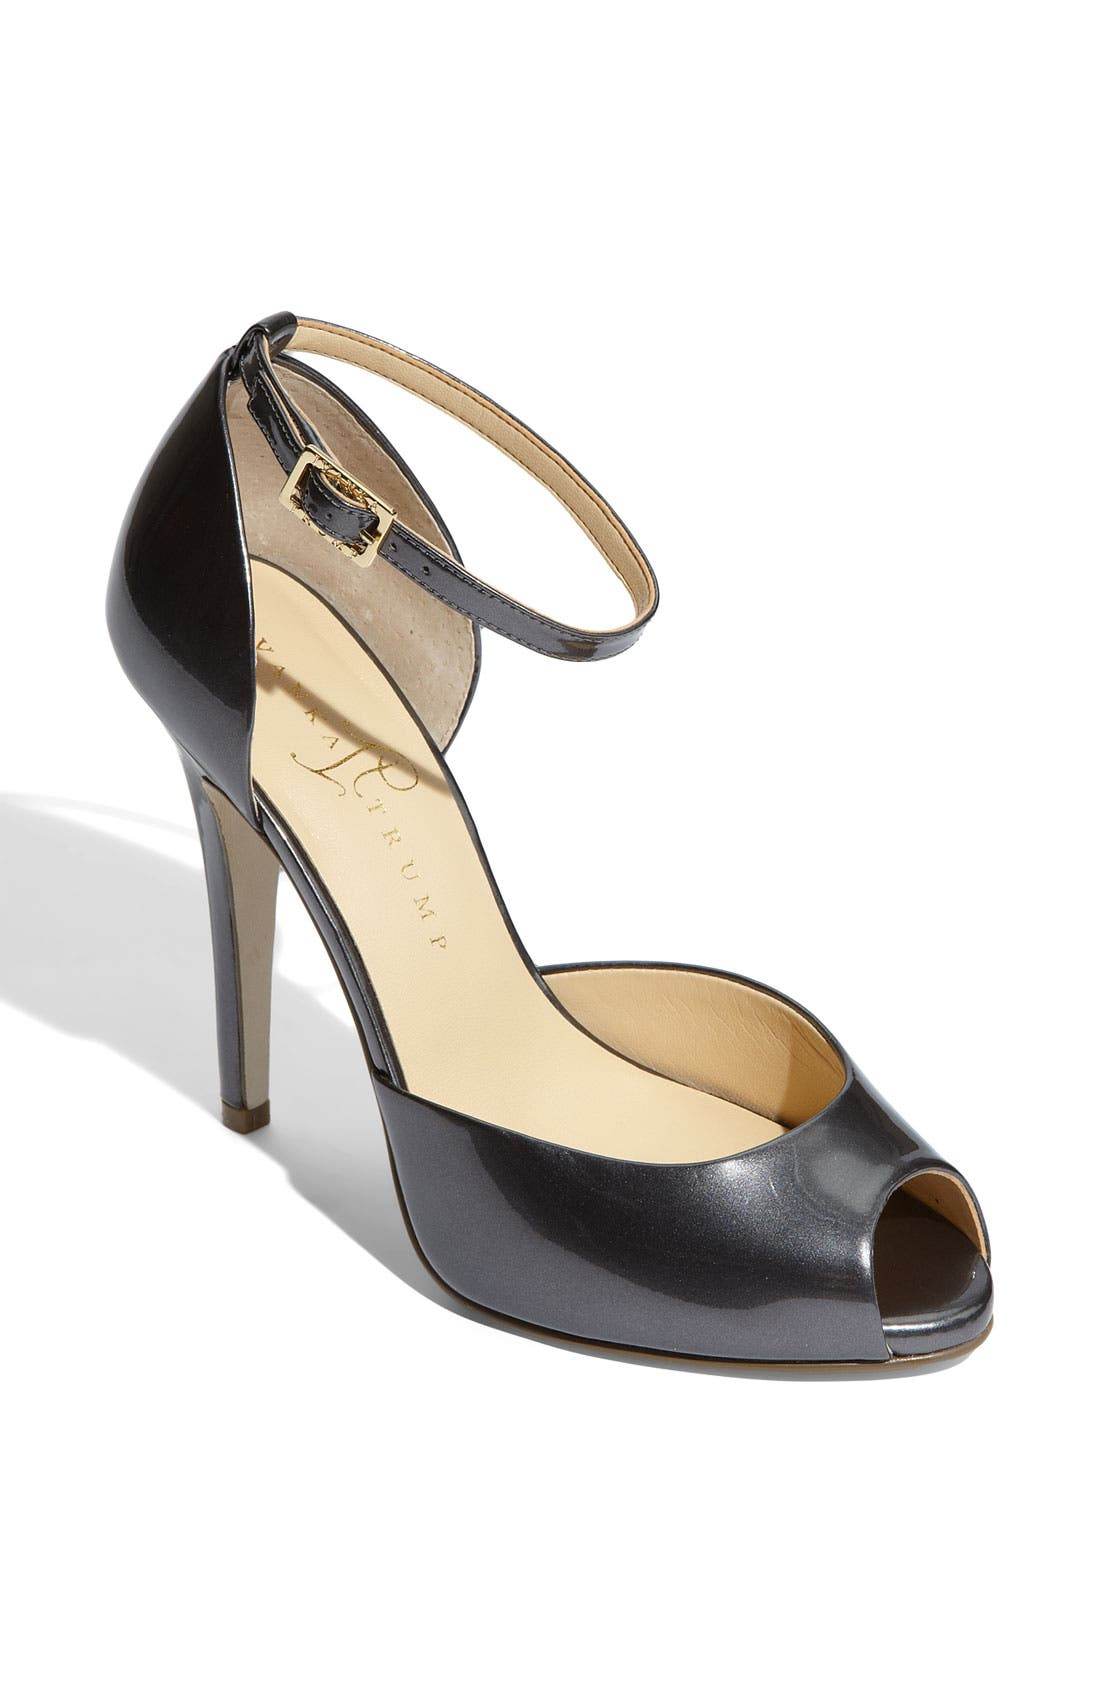 Main Image - Ivanka Trump 'Bulbli' Pump